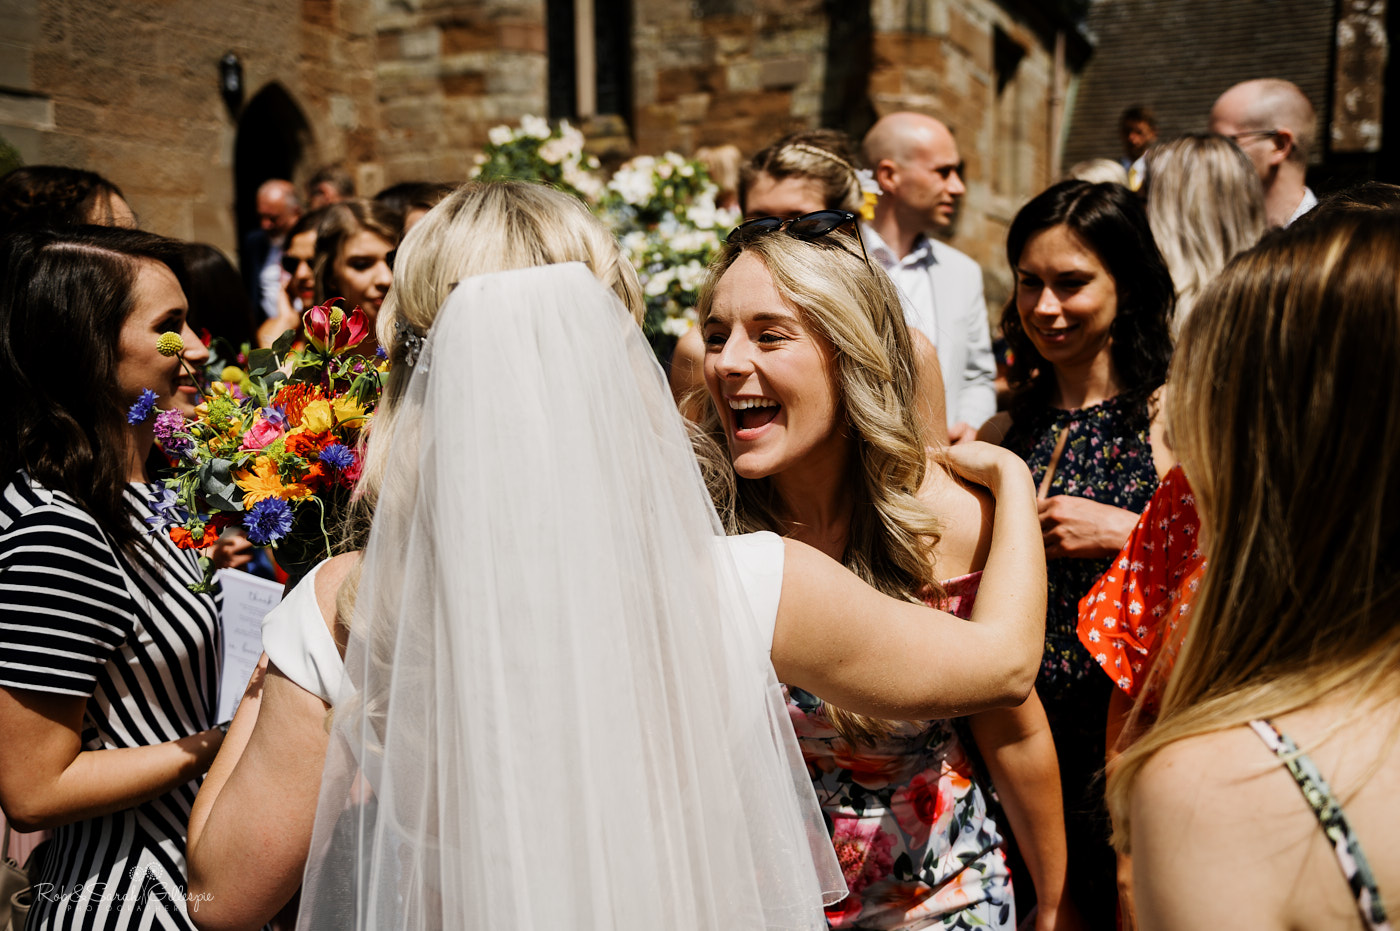 Wedding guests hug and congratulate couple at St Leonard's church in Clent